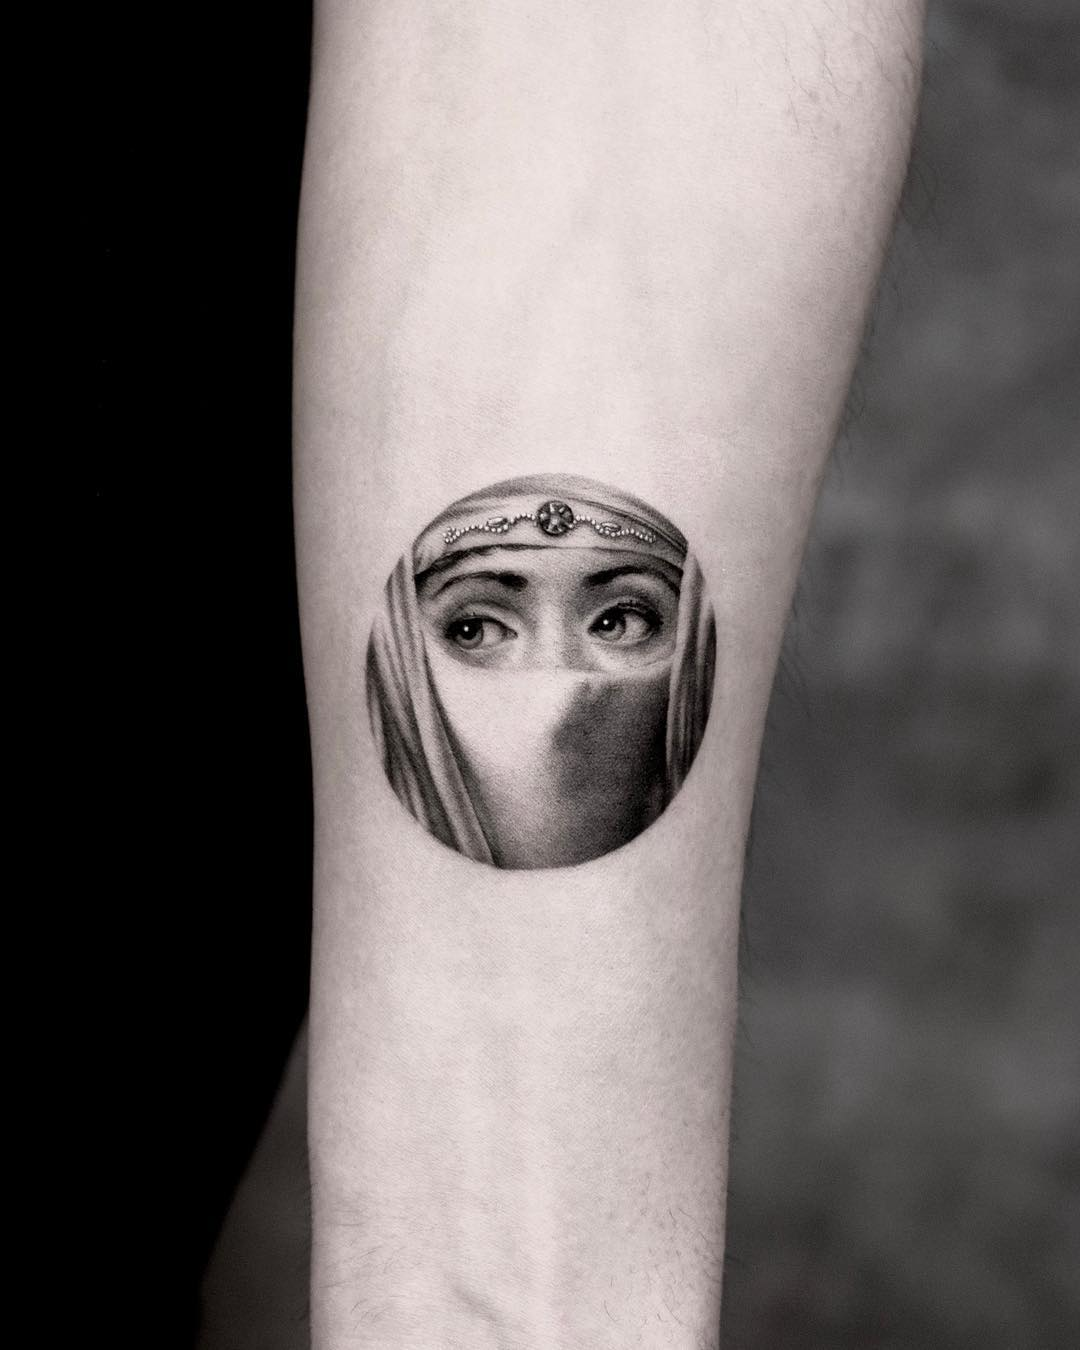 Fornasetti eye tattoo by Tattooist Yeono